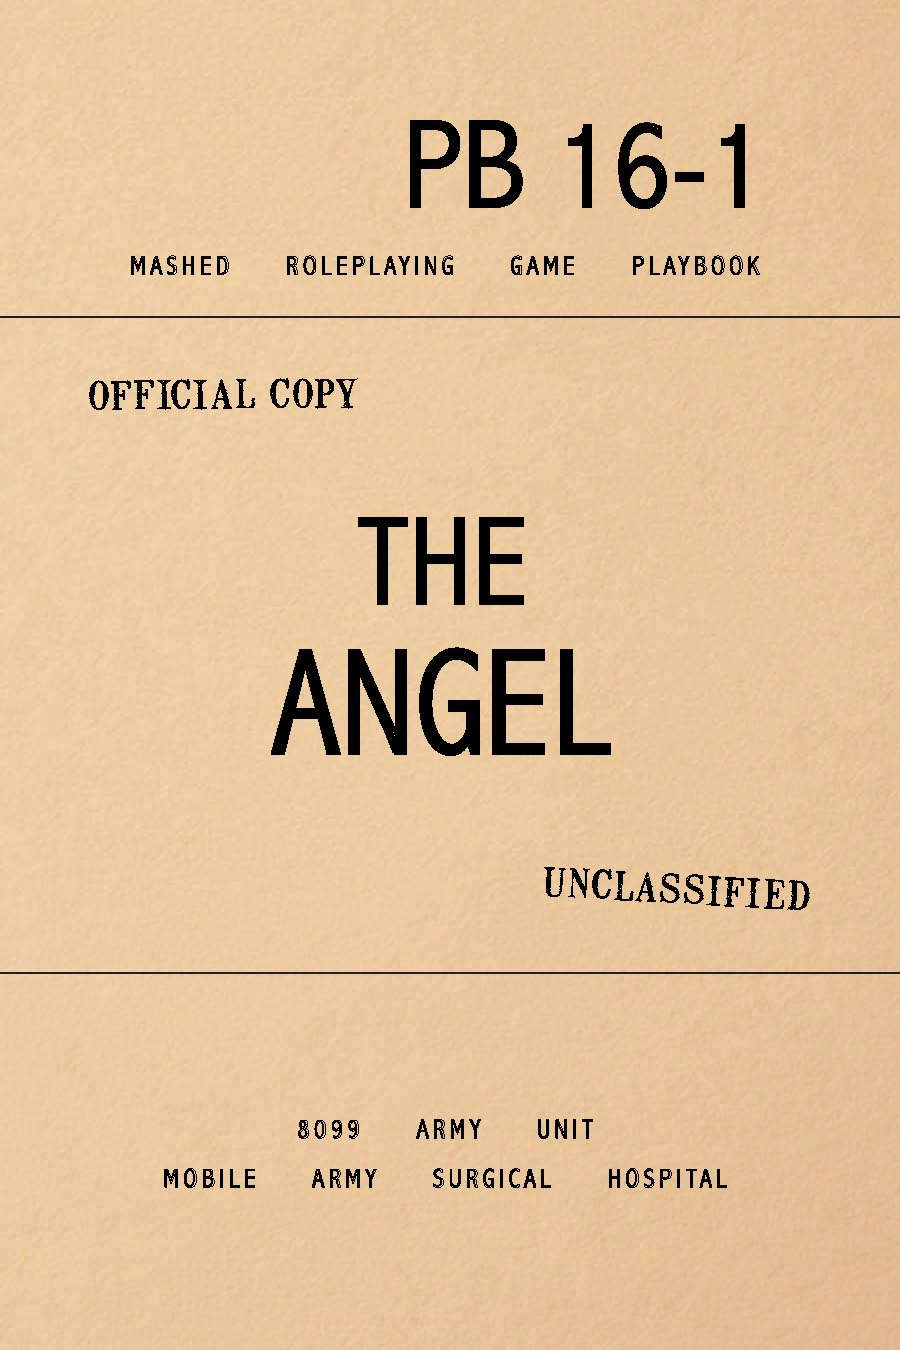 MASHED: The Angel (Deluxe Playbook) - Brabblemark Press   MASHED